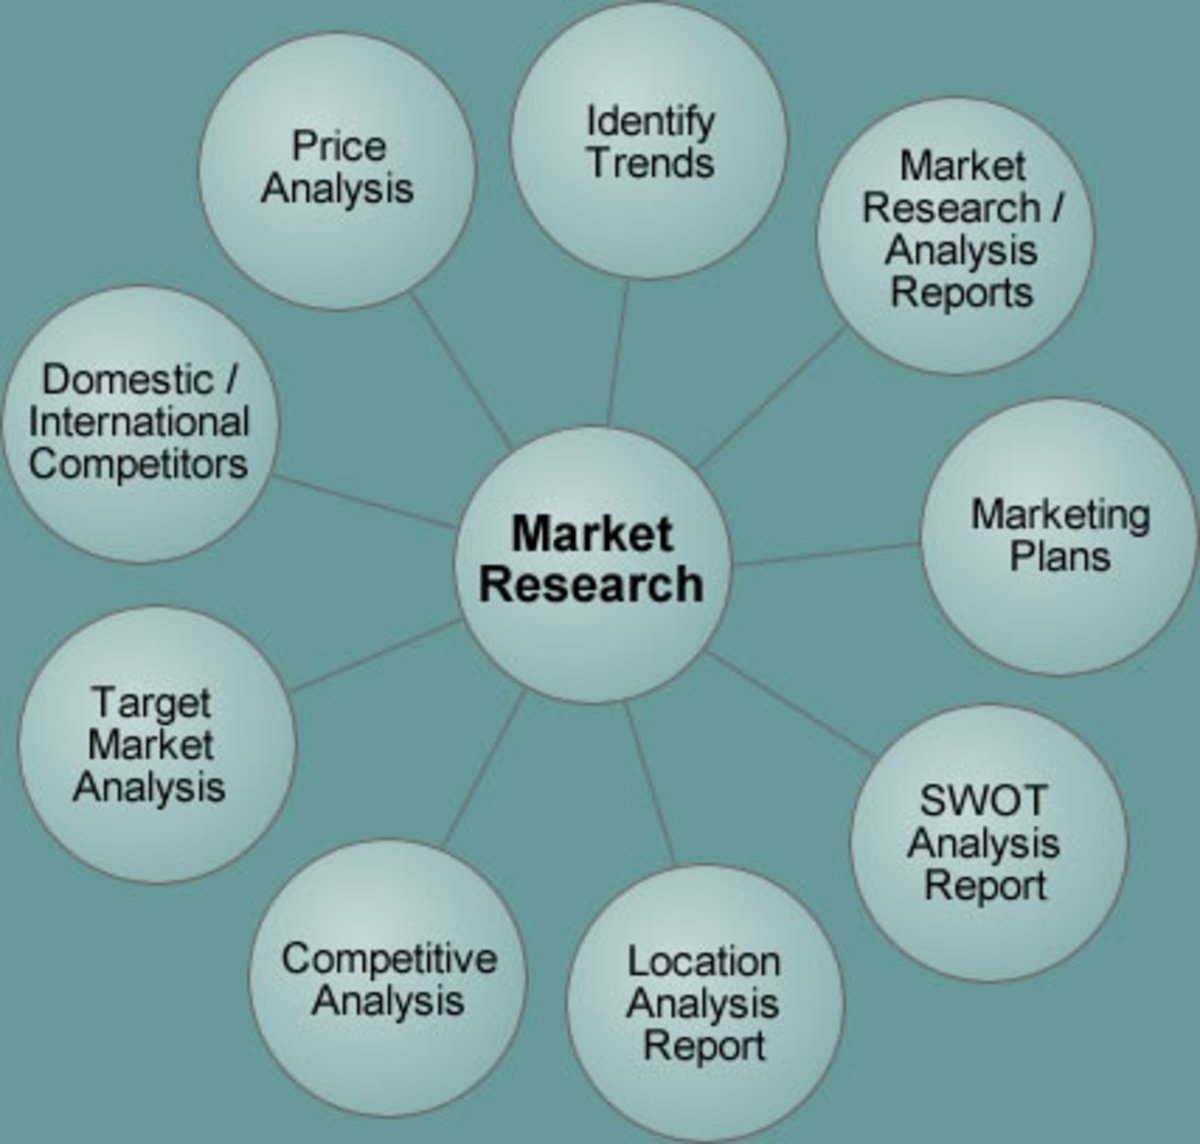 What is Market Research and The Marketing Mix (7P's and 7C's)?